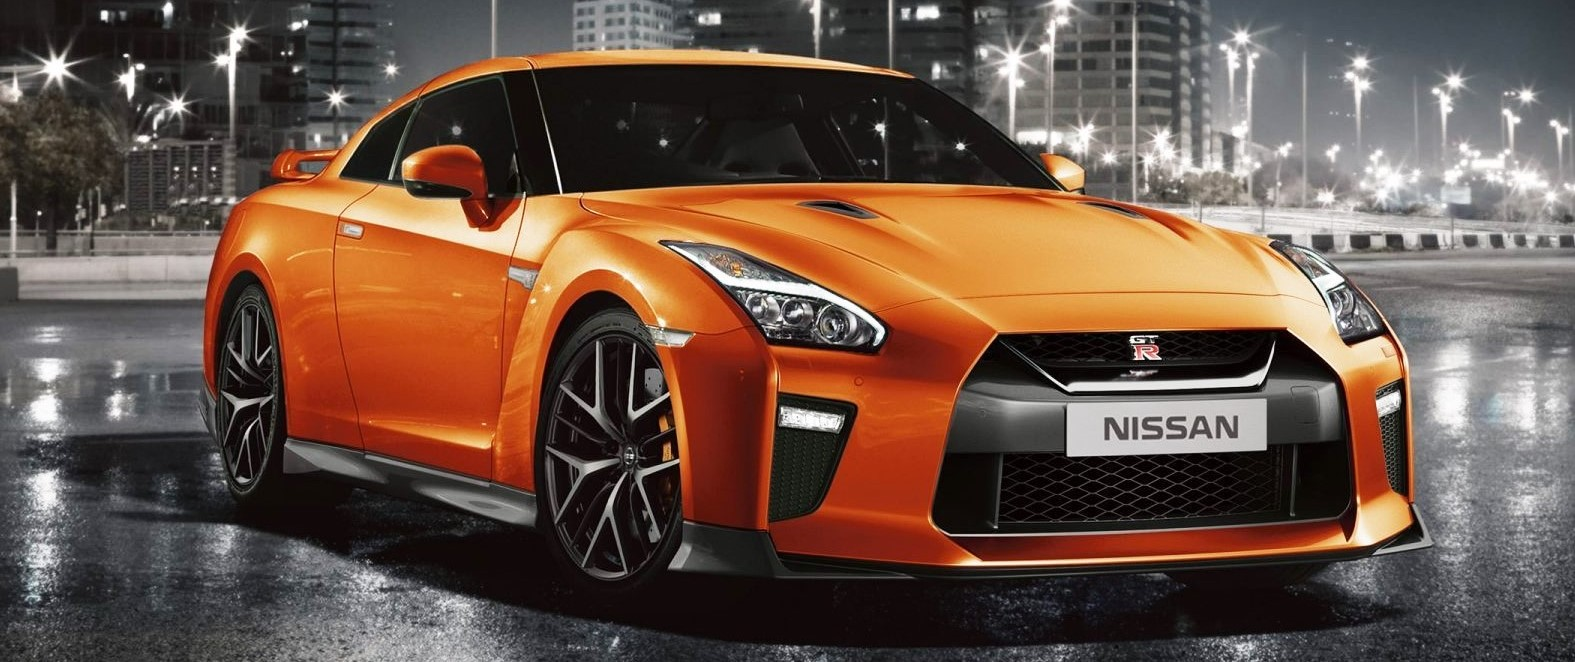 Nissan GT-R Launched in India @ INR 1.99 Crore